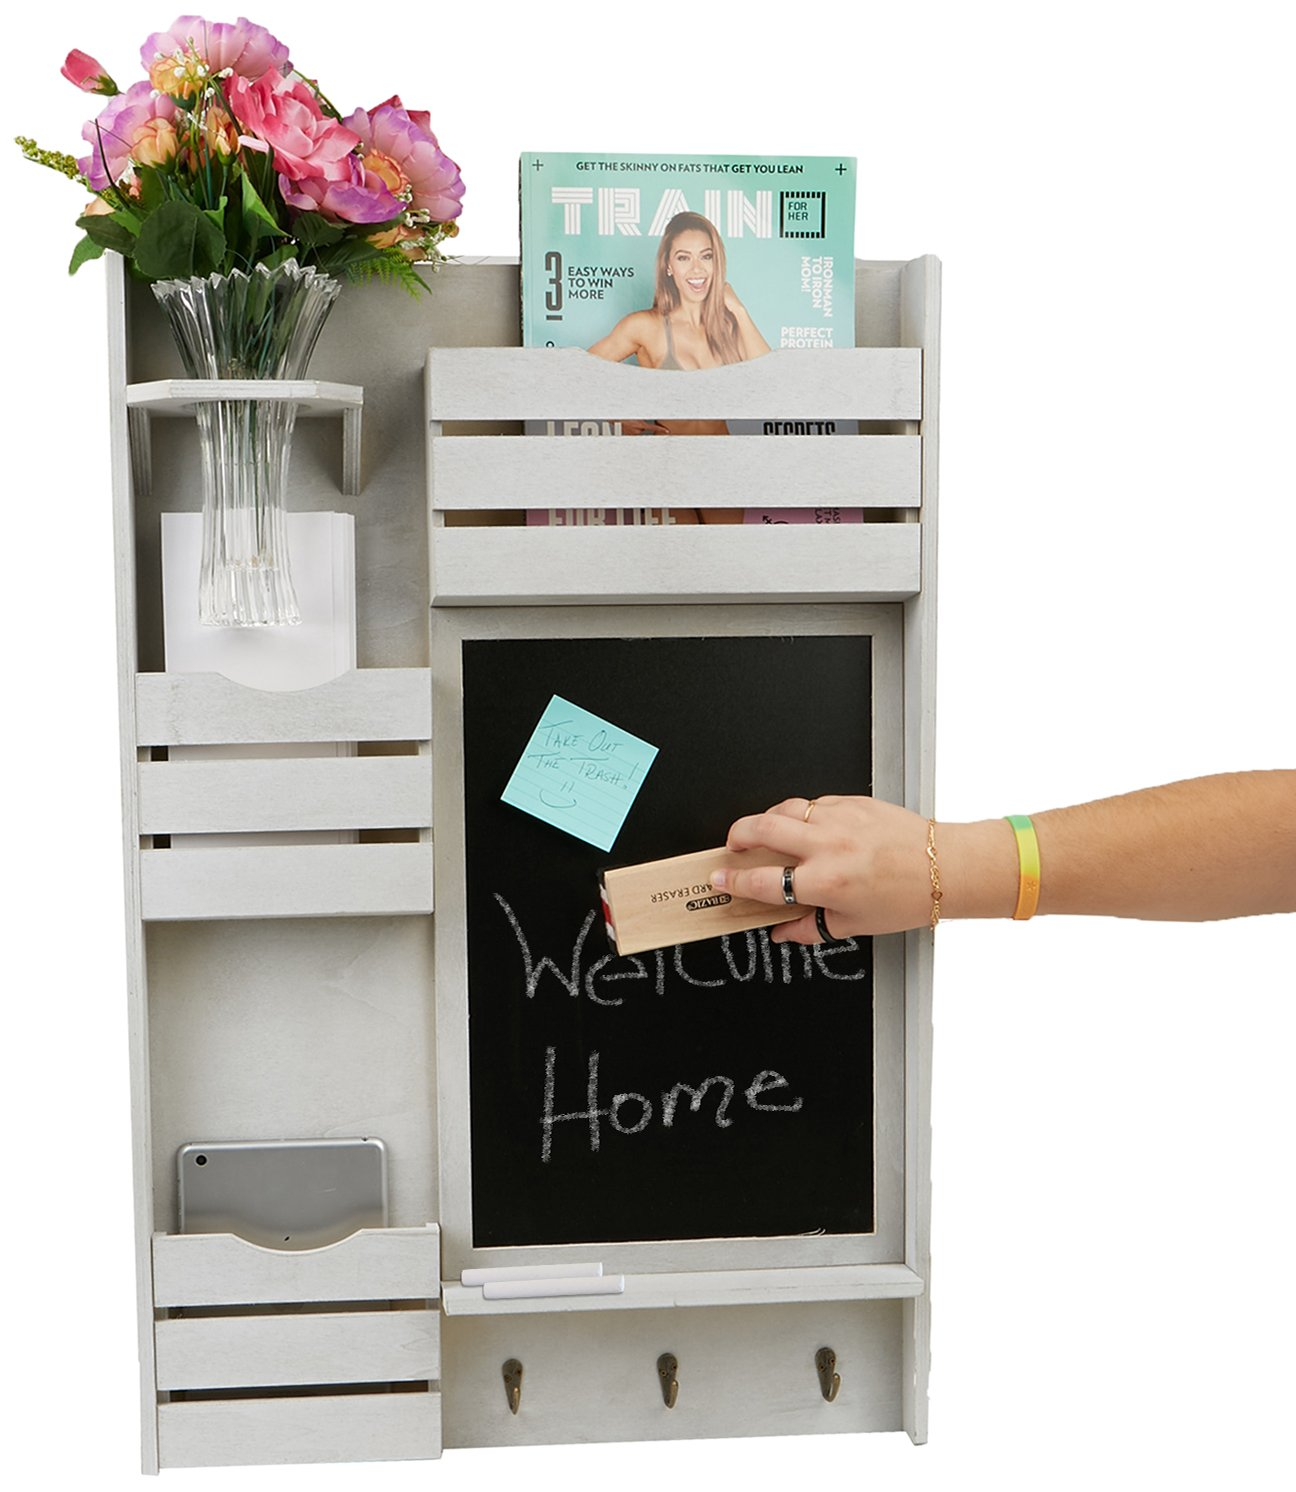 Mind Reader Wall Mount Shelf, Decor Piece with Chalk Board, Bedroom, Living Room, Bathroom, Kitchen, Office and More by Mind Reader